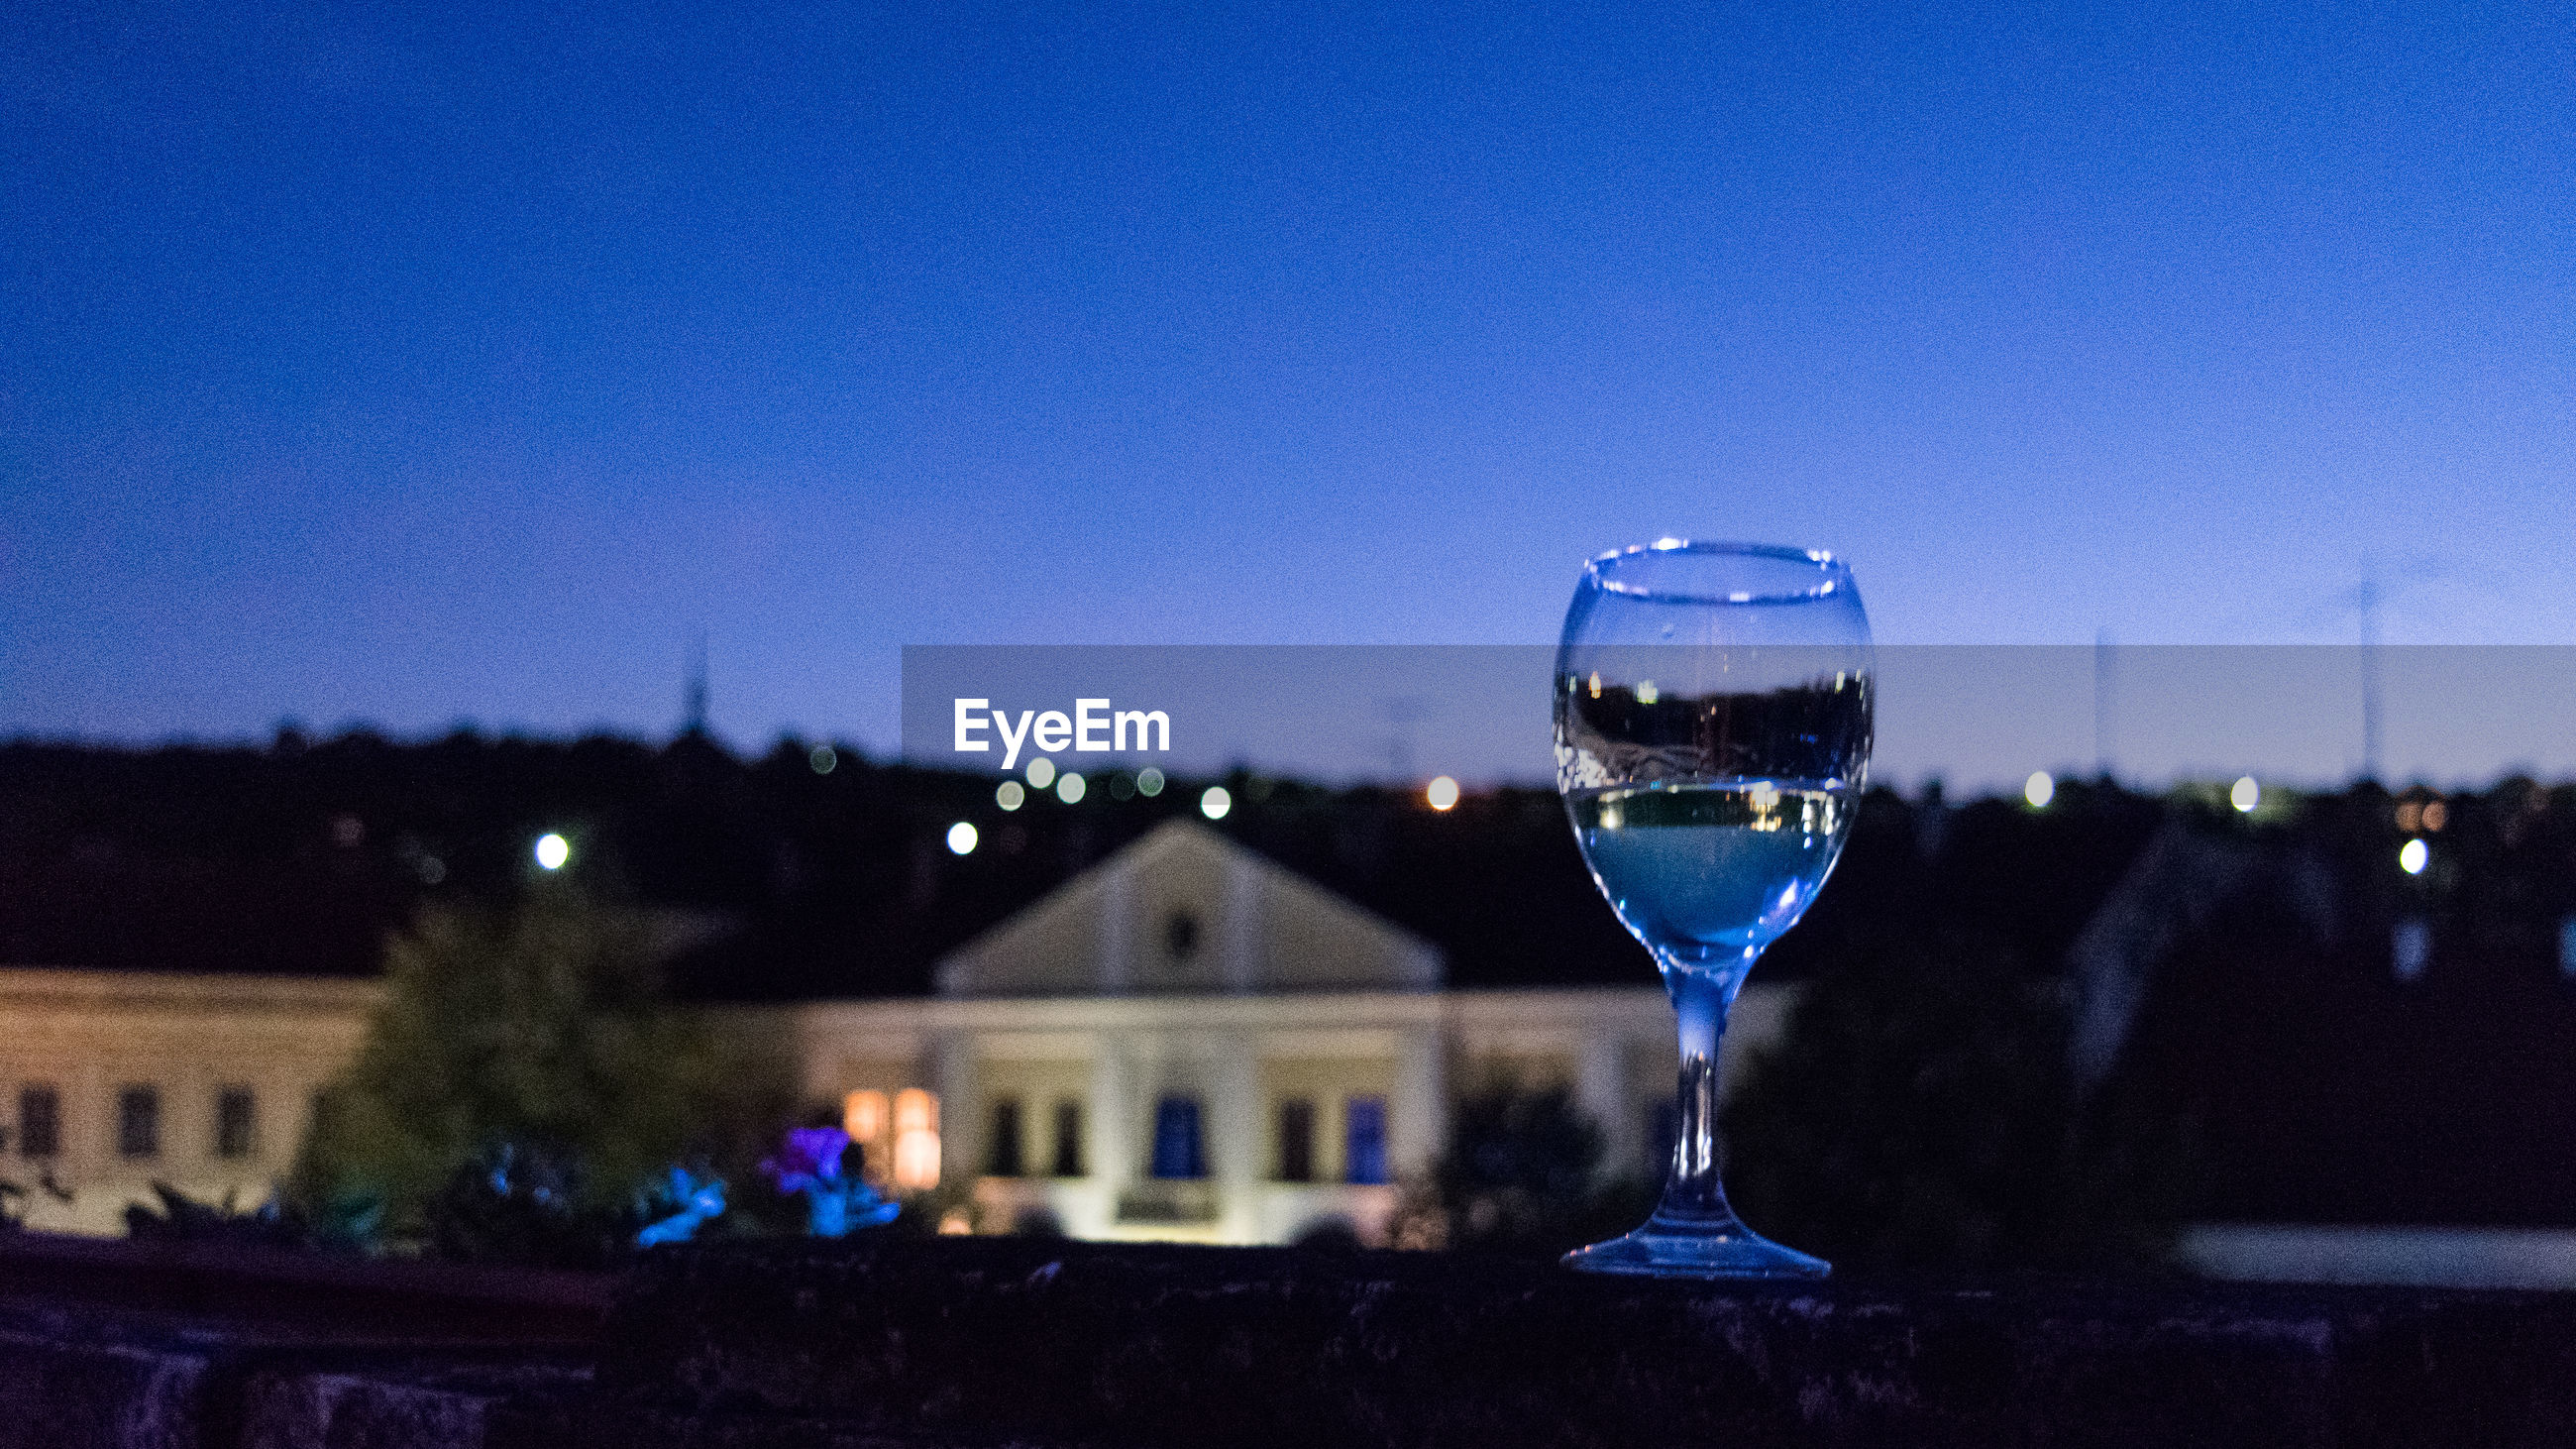 Close-up of wineglass against clear sky at night